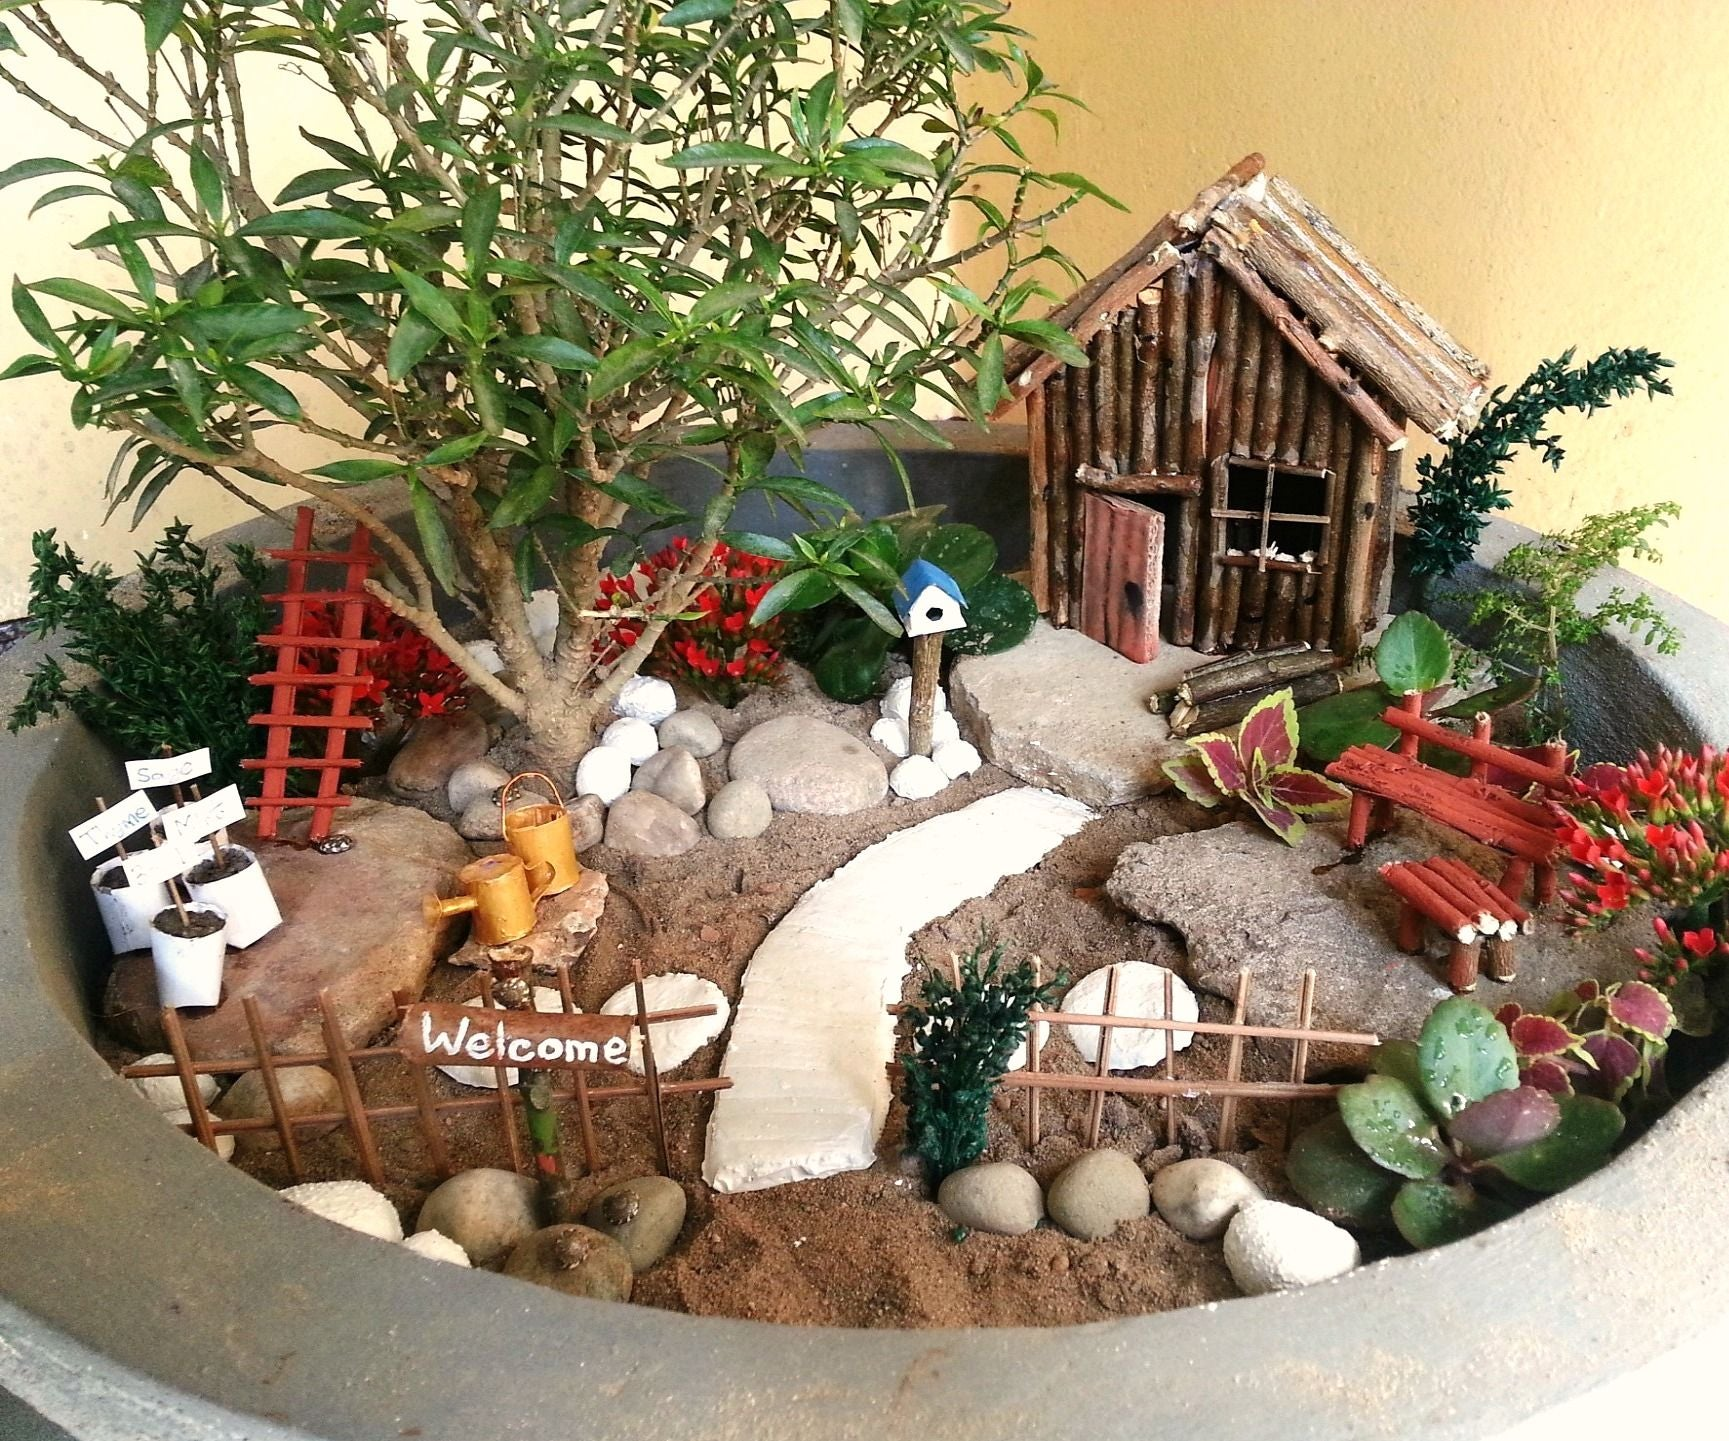 Gnome In Garden: DIY Miniature Garden Accessories: 15 Steps (with Pictures